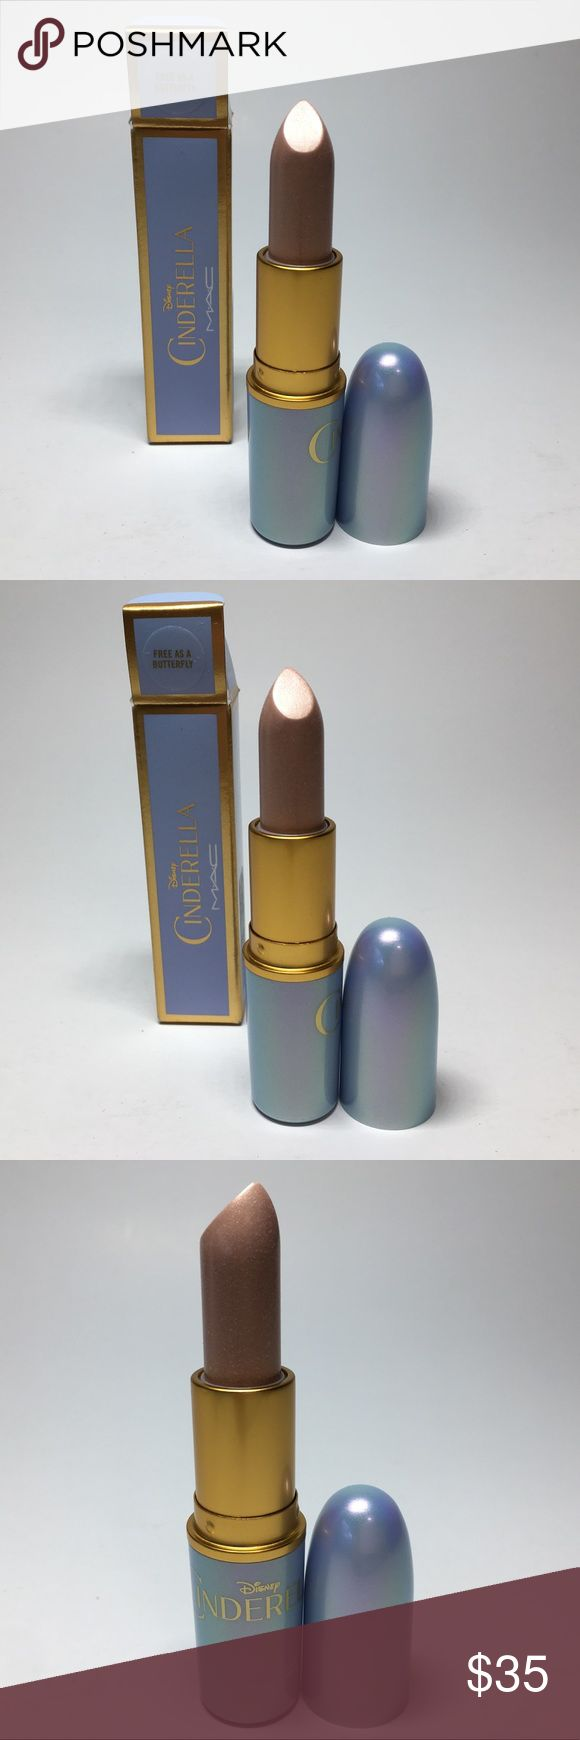 NIB Mac Free as a Butterfly Cinderella 100% Authen NIB Mac Cosmetics  Free as a Butterfly Lustre Lipstick  Disney Cinderella  Batch code: A94 100% Authentic  Brand new. Never used or tested.  *Please see pictures of white coating. For some reason Lustres develop this coating over time.  Please see pictures as this is the actual item you will receive. Please feel free to ask any questions and I will get back to you as soon as possible. Thank you! MAC Cosmetics Makeup Lipstick